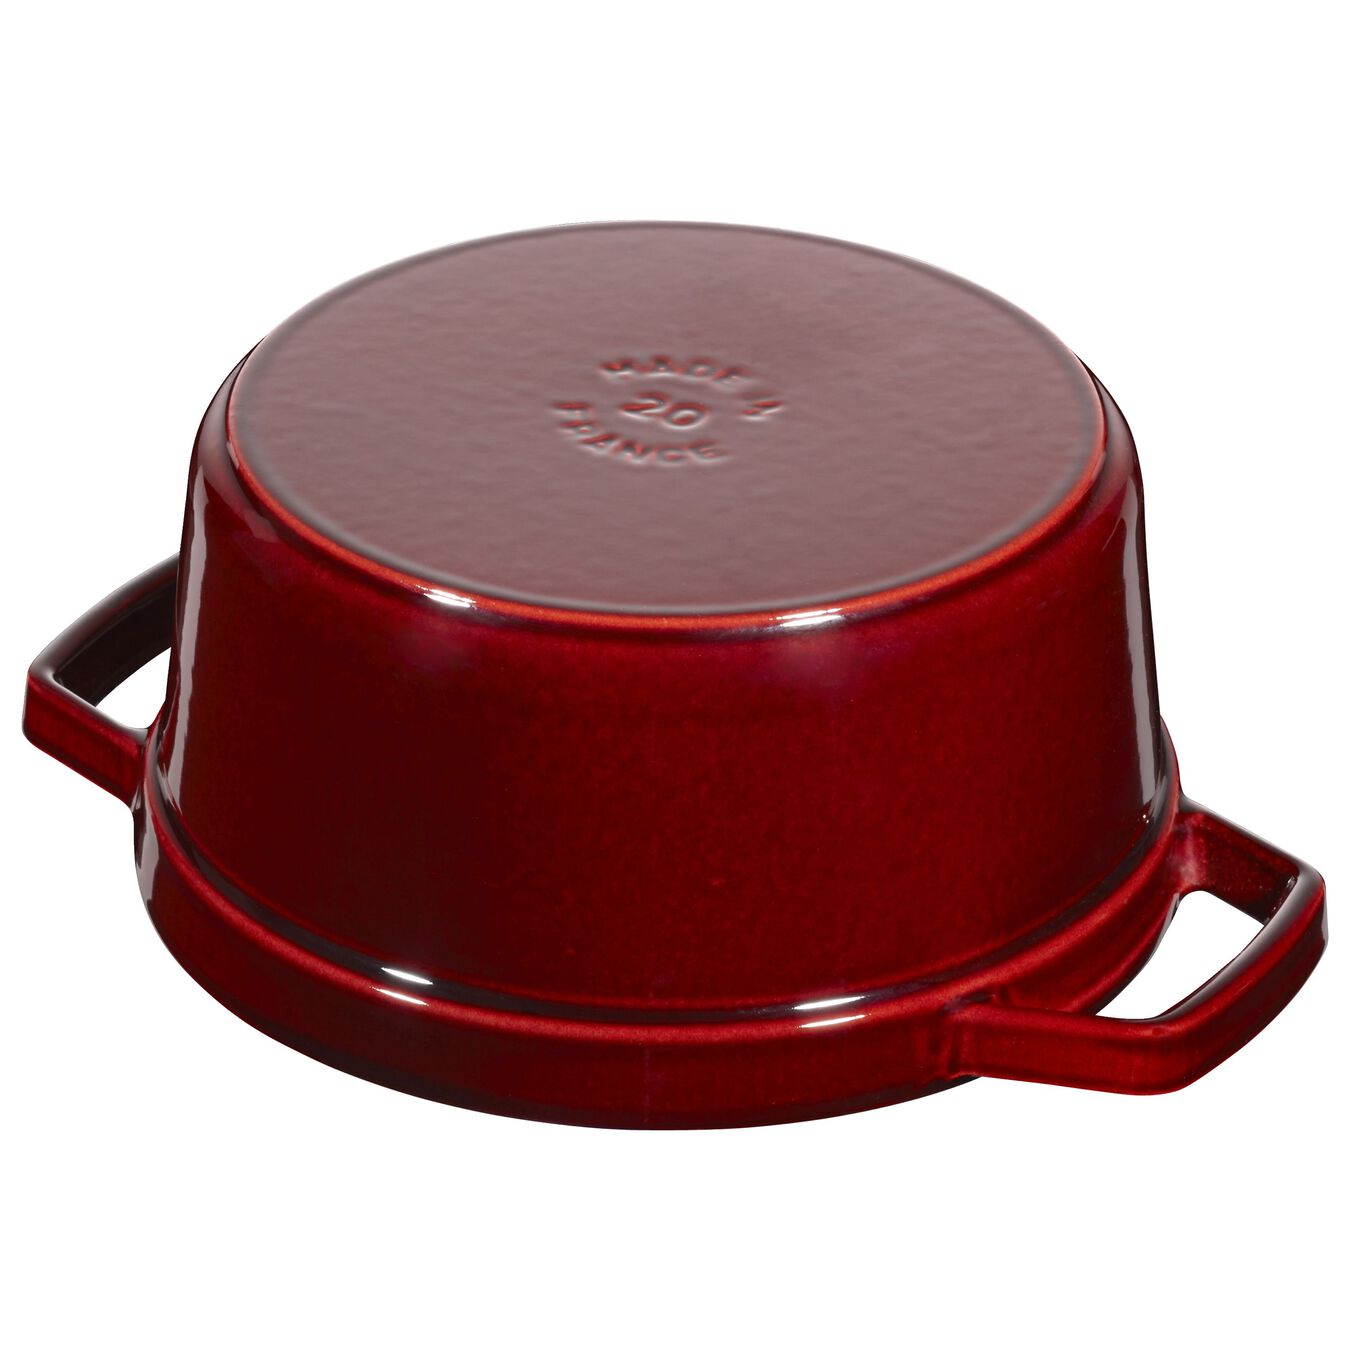 2.25 l Cast iron round Cocotte, grenadine-red,,large 2